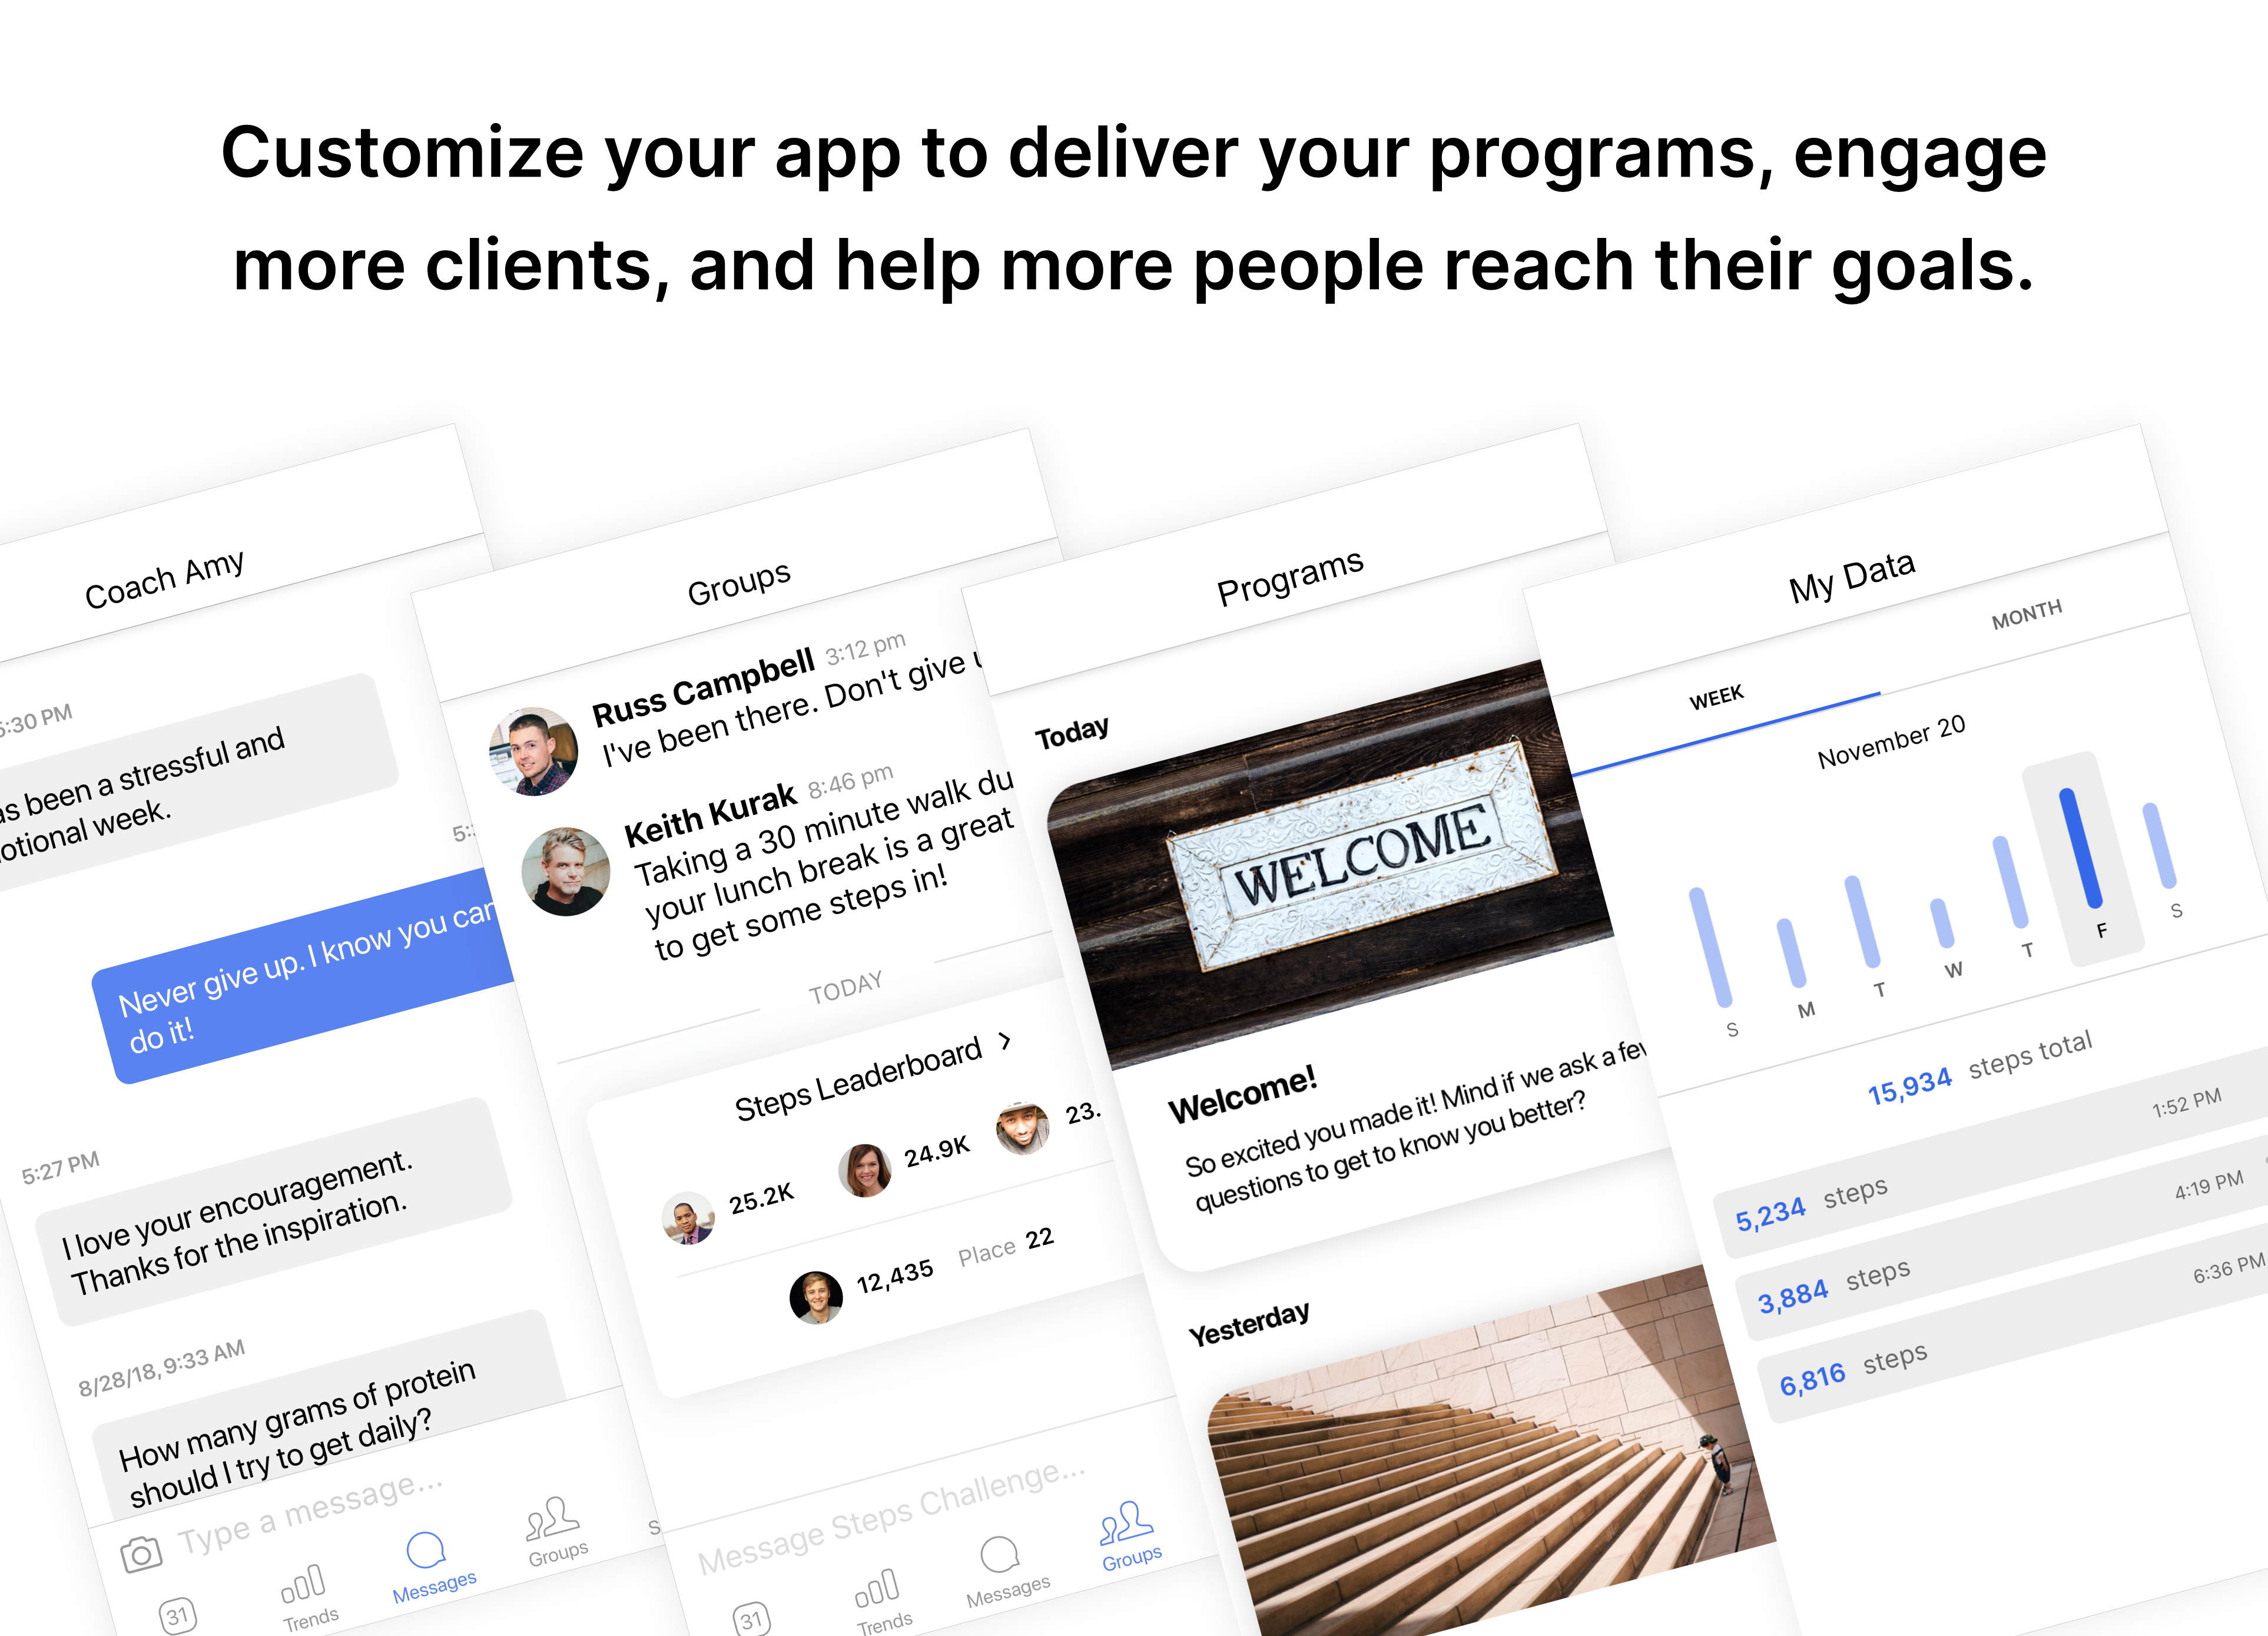 Customize the mobile app to create beautiful and engaging client experiences.